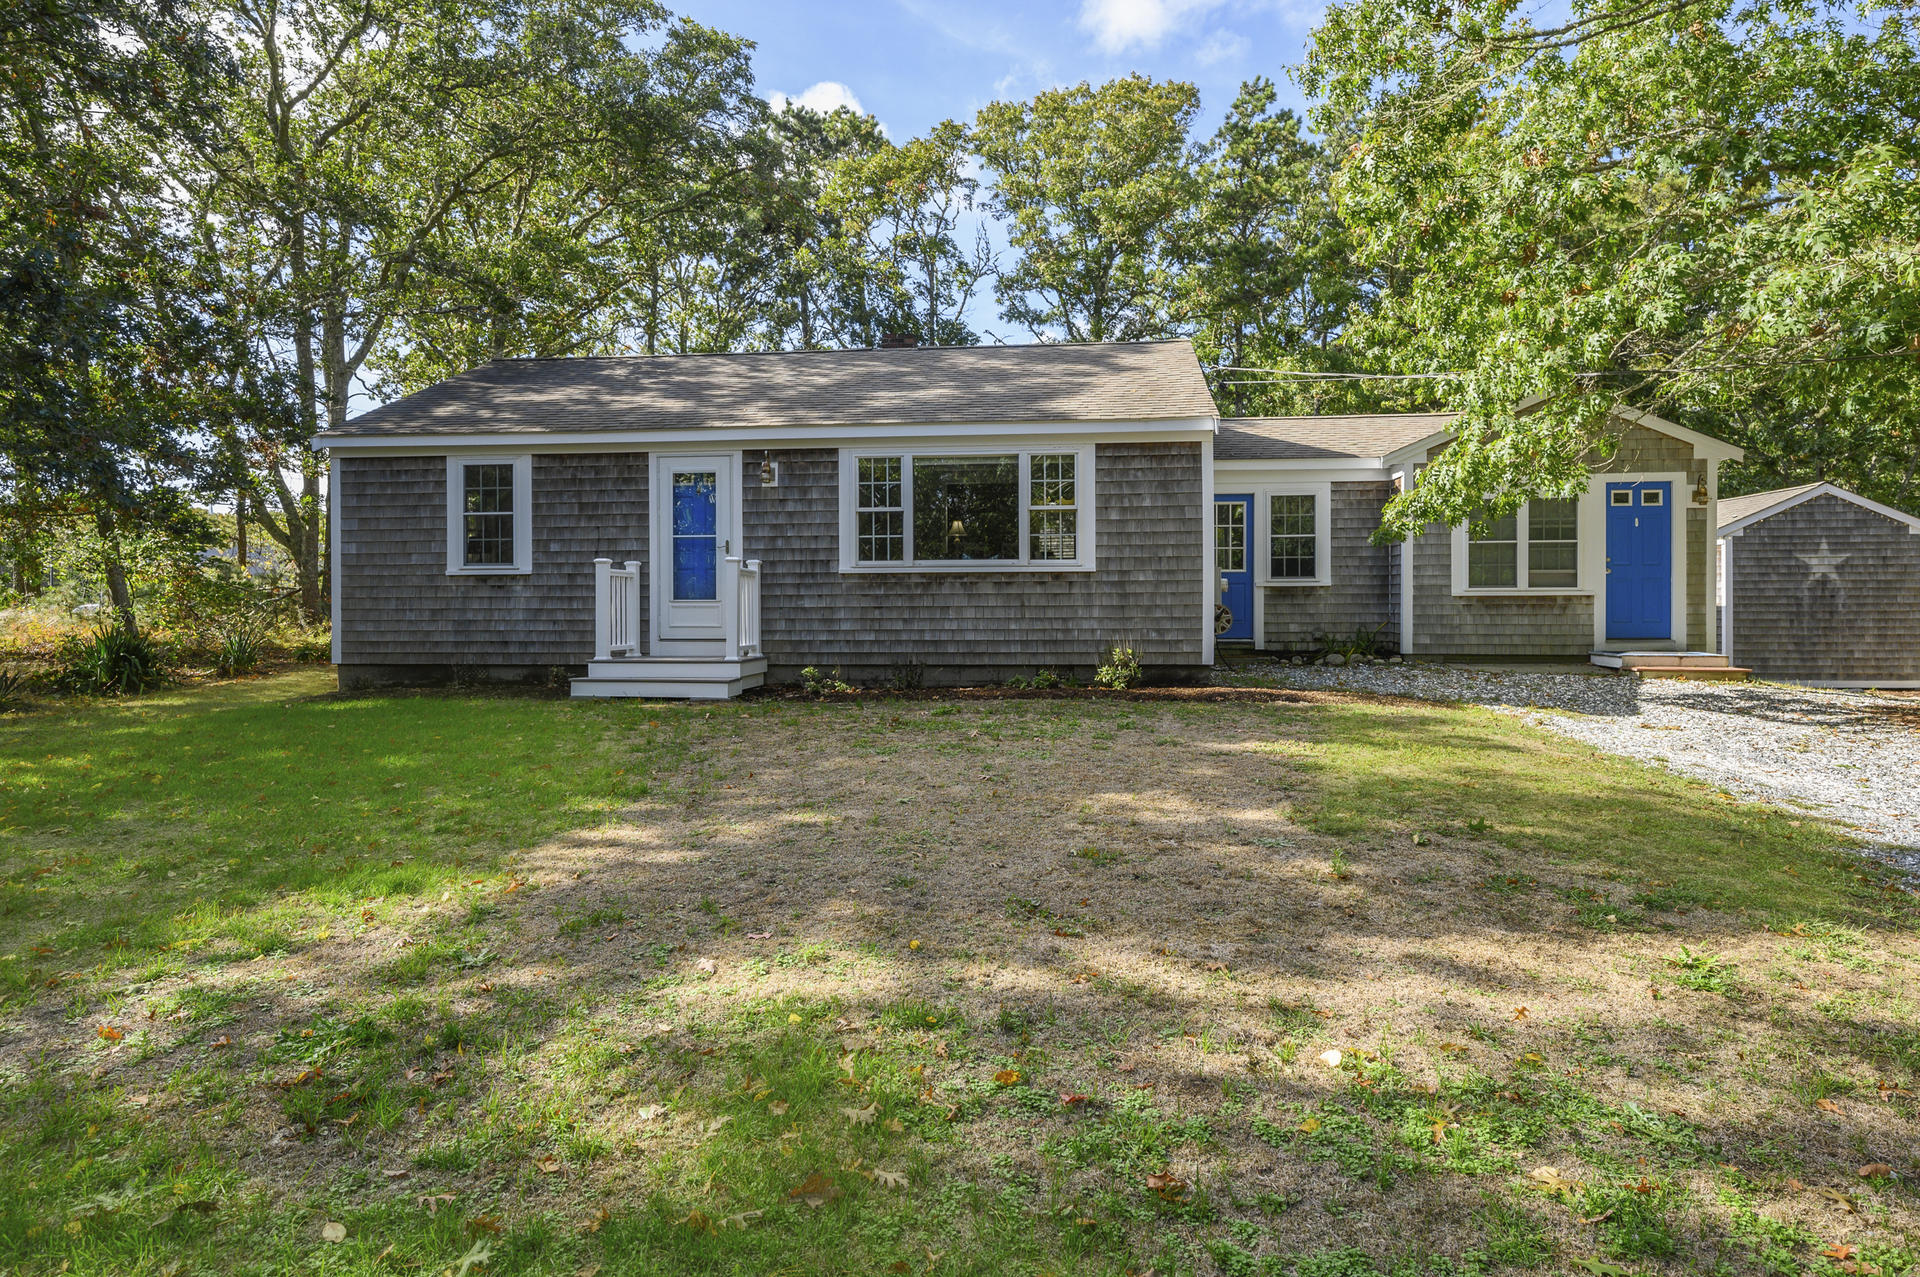 134 Round Cove Road, Harwich MA, 02645 details